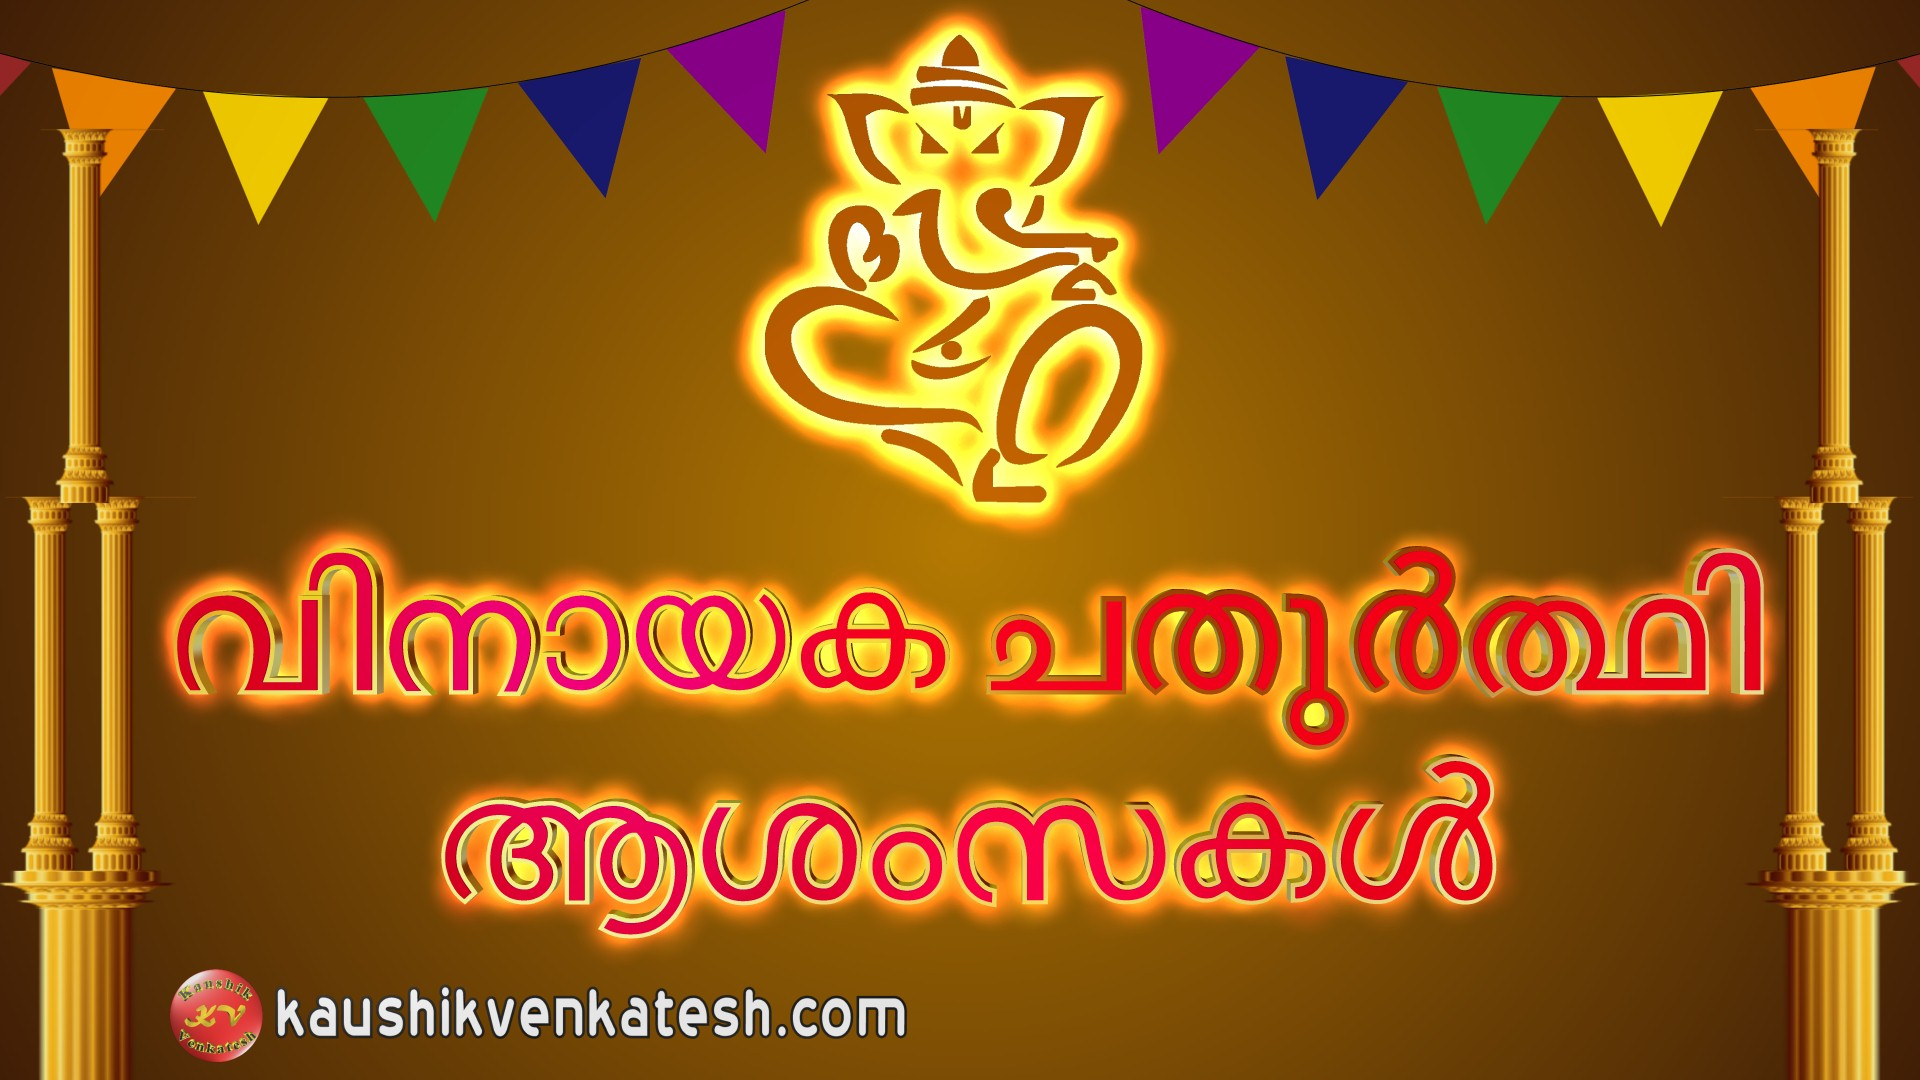 Greetings Image for Ganesh Chaturthi festival